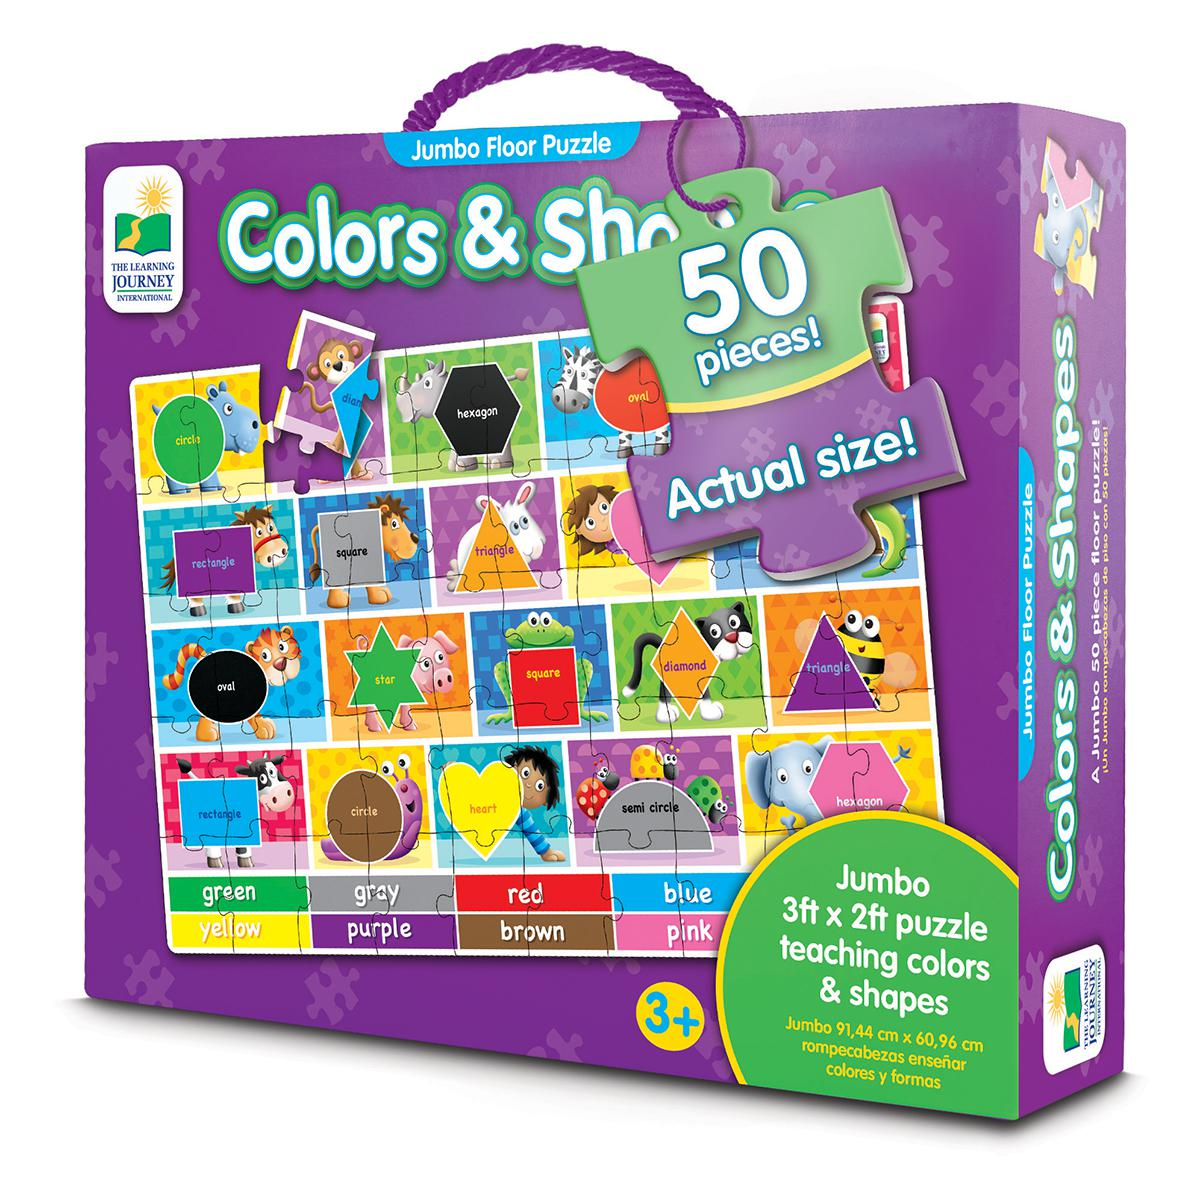 Jumbo Floor Puzzle: Colors & Shapes